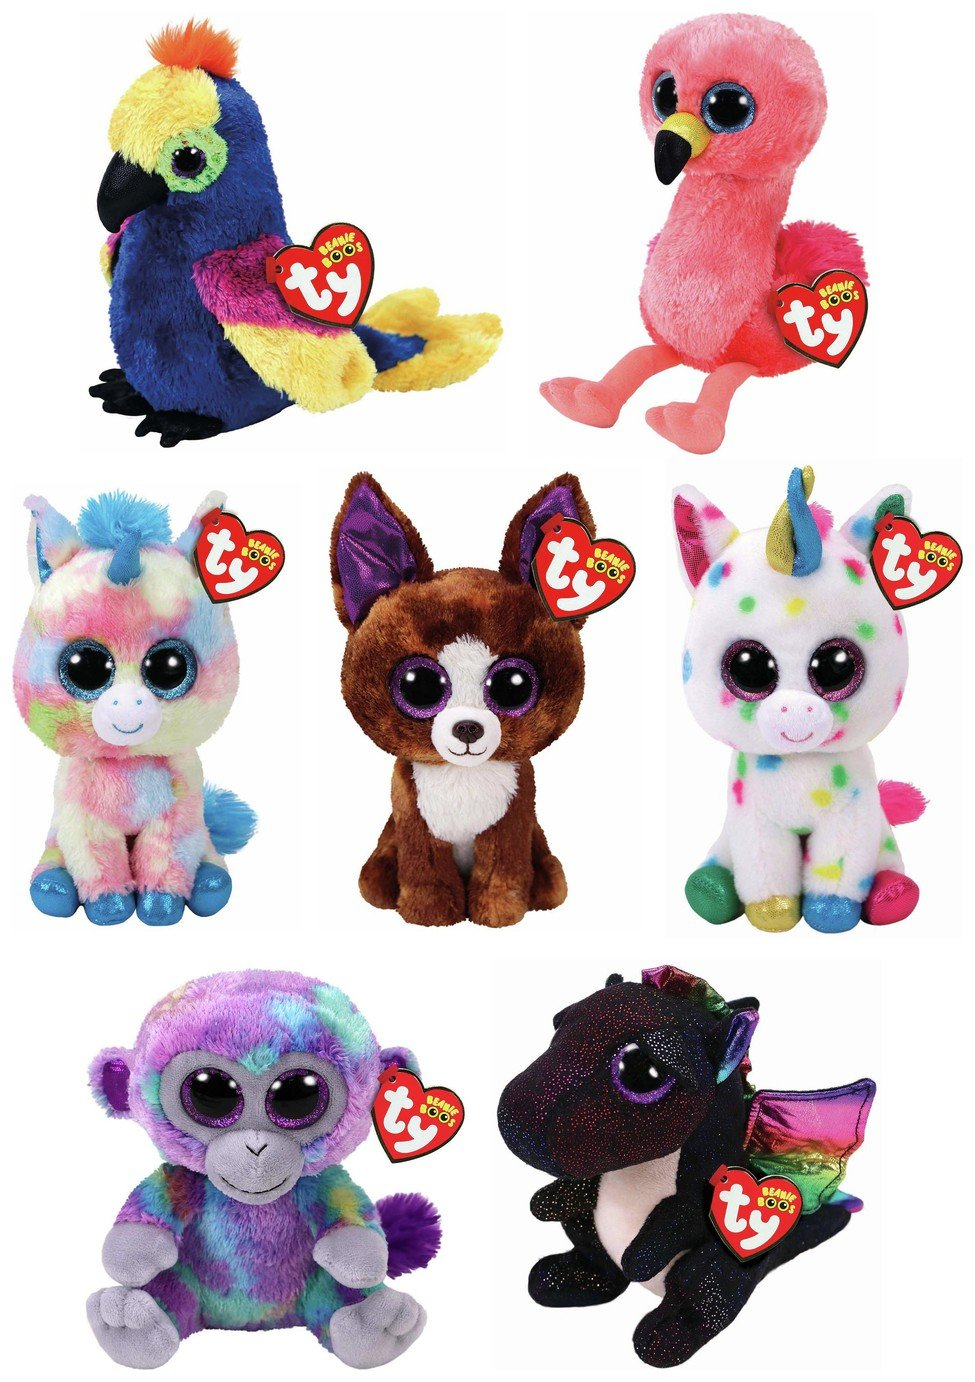 Image of Beanie Boos Assortment